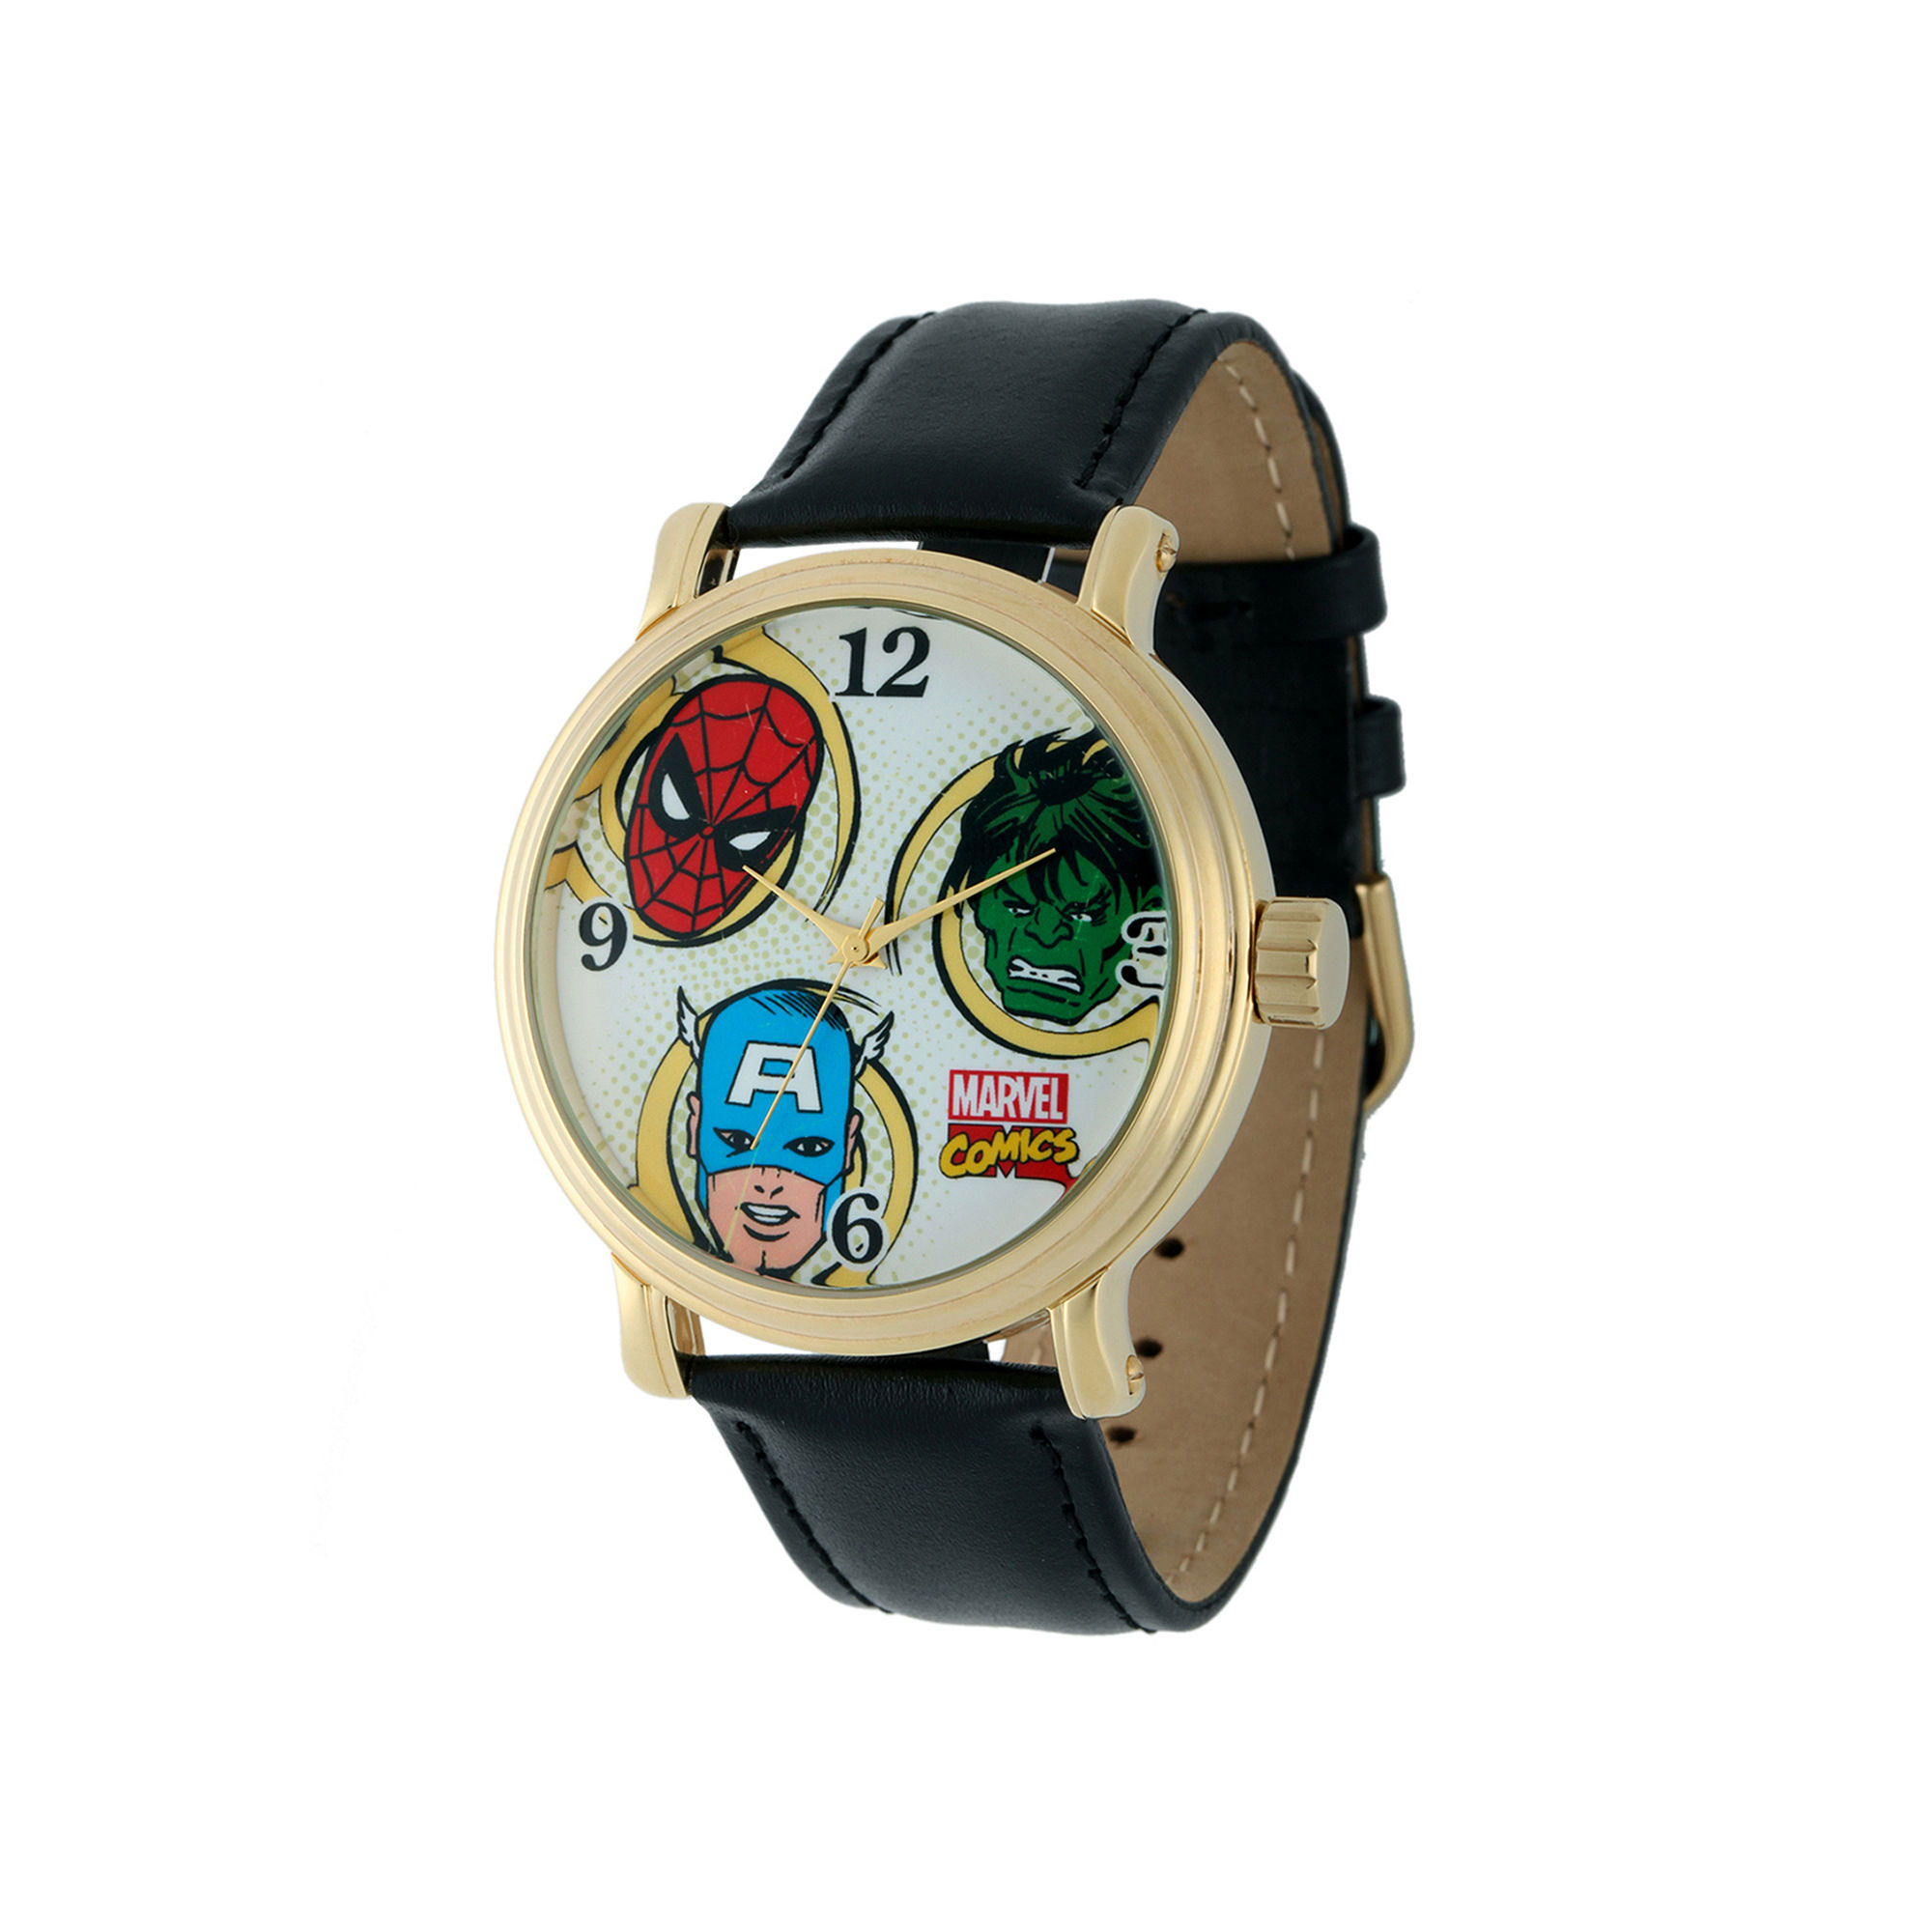 Marvel Vintage Avengers Mens Black Leather Strap Watch